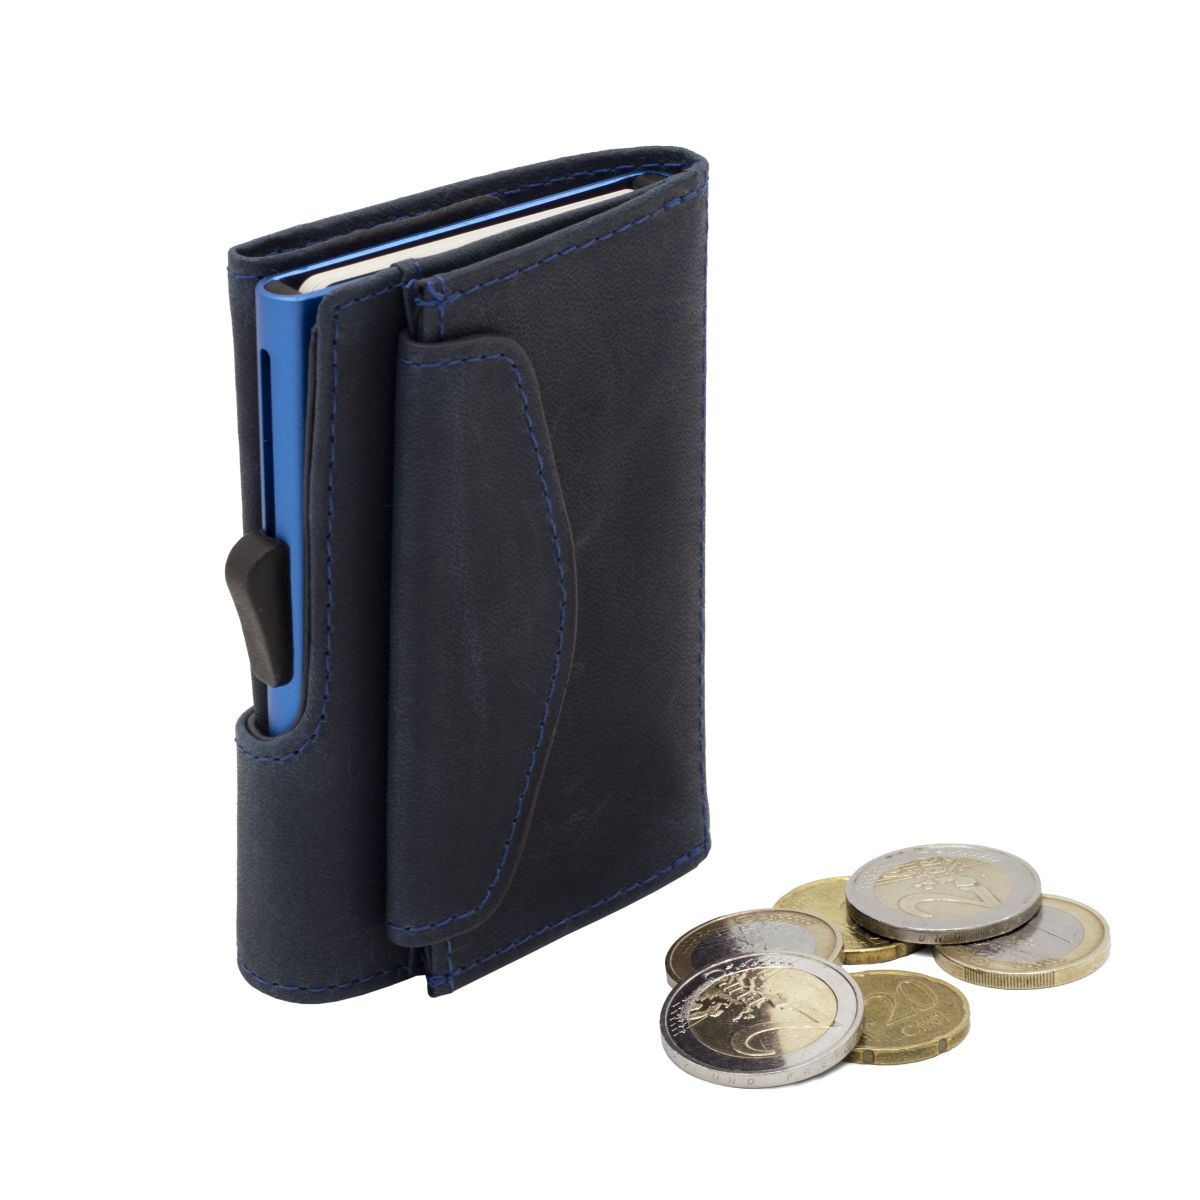 Aluminum Card Holder with Genuine Leather and Coin Pouch - Naval Blue